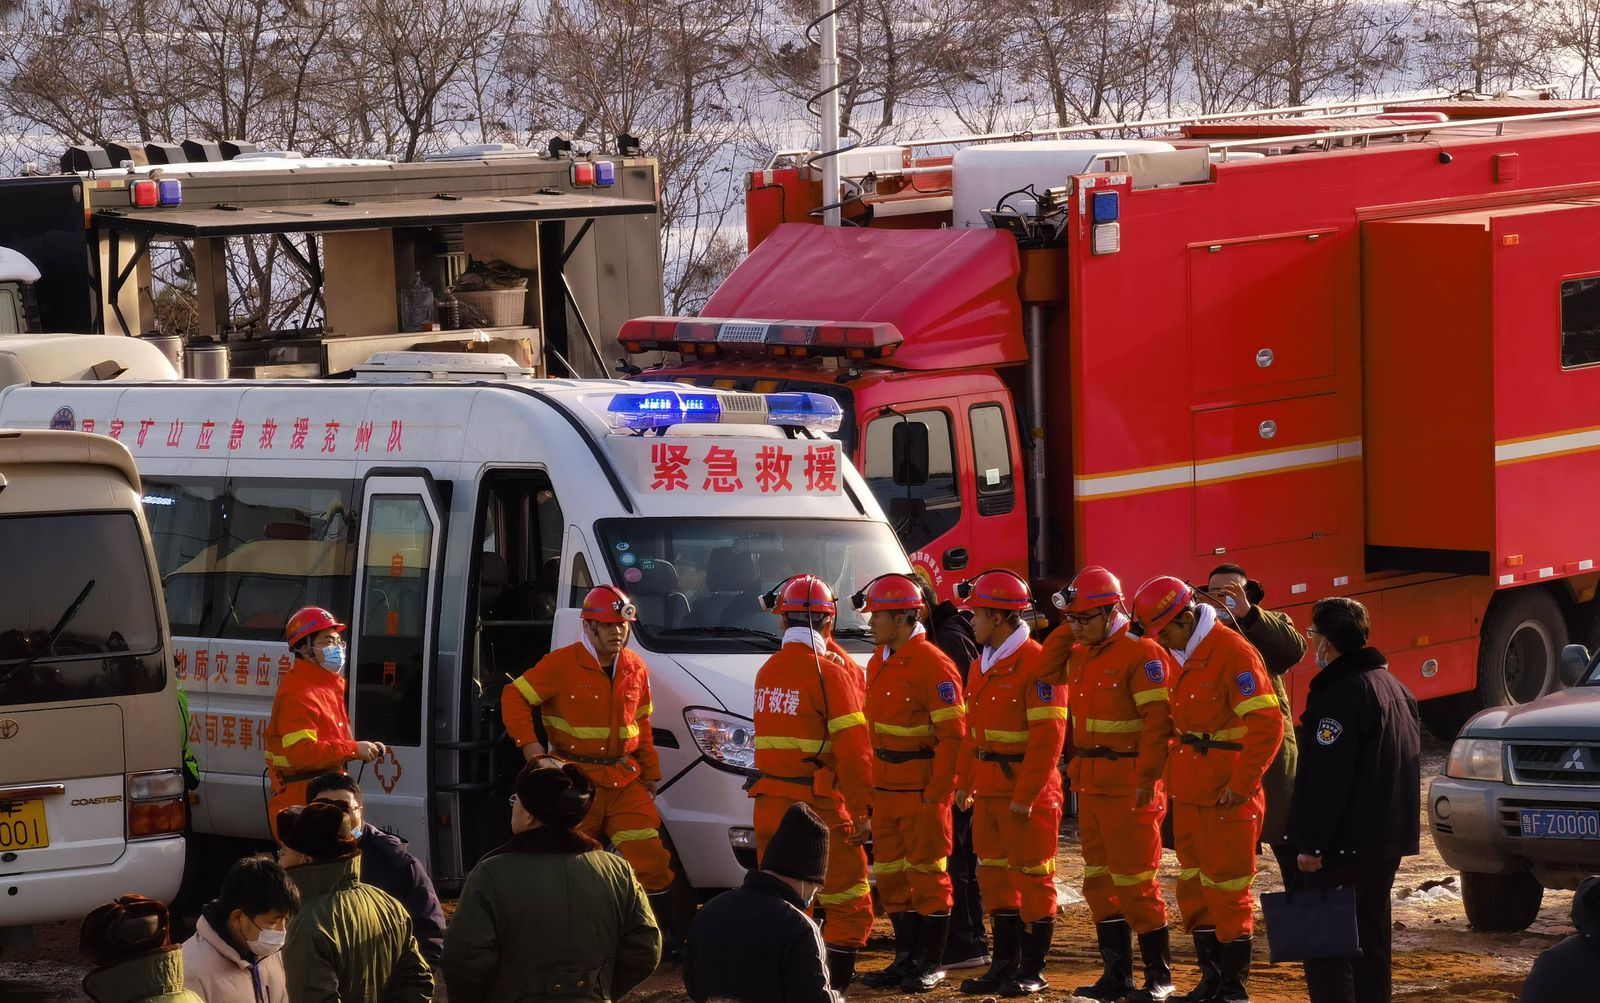 (210112) -- QIXIA, Jan. 12, 2021 -- Rescuers are seen at the explosion site of a gold mine in Qixia City, east China s